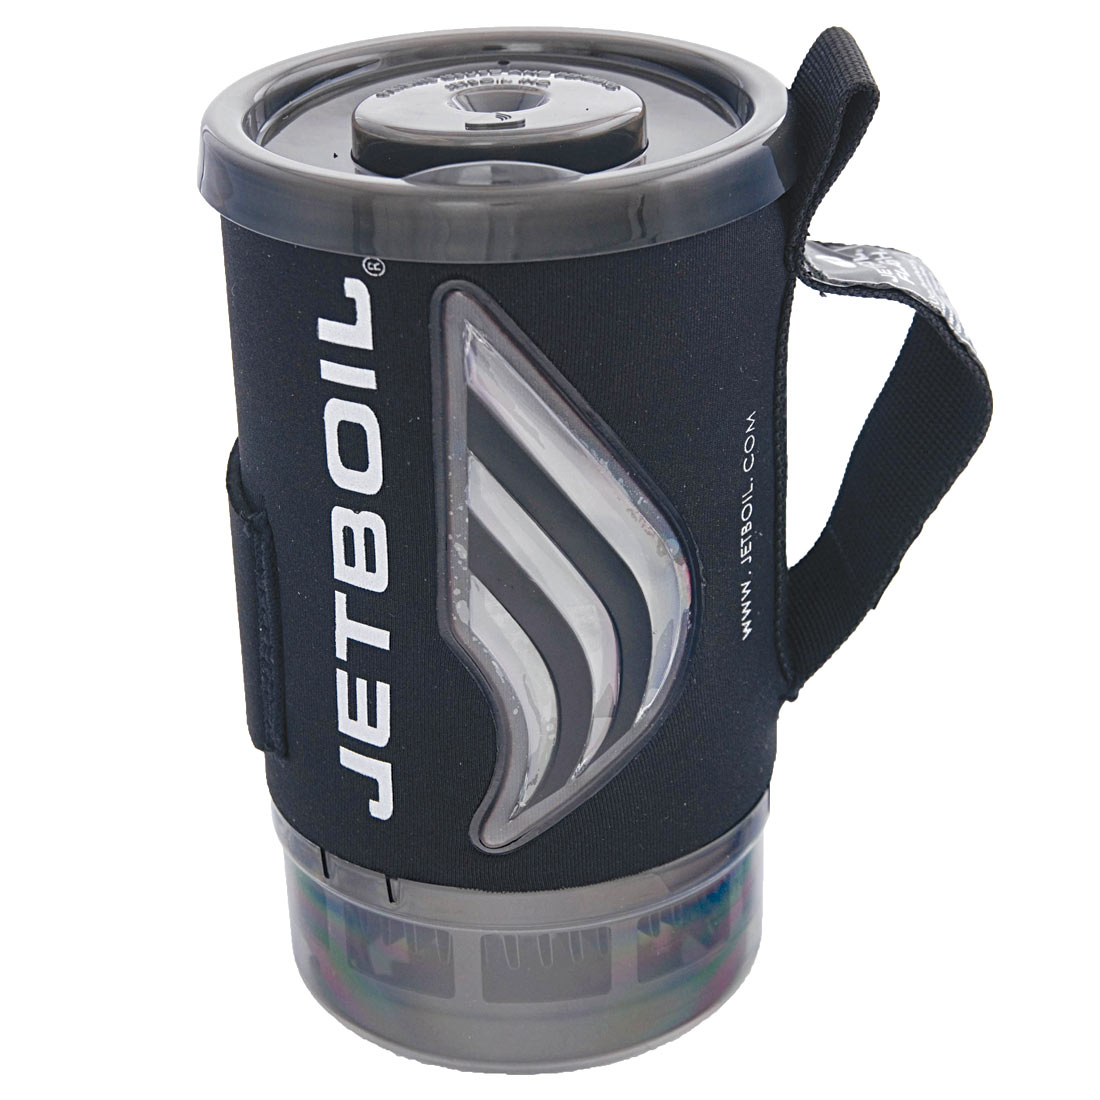 Кастрюля JETBOIL Flash Companion Cup-1